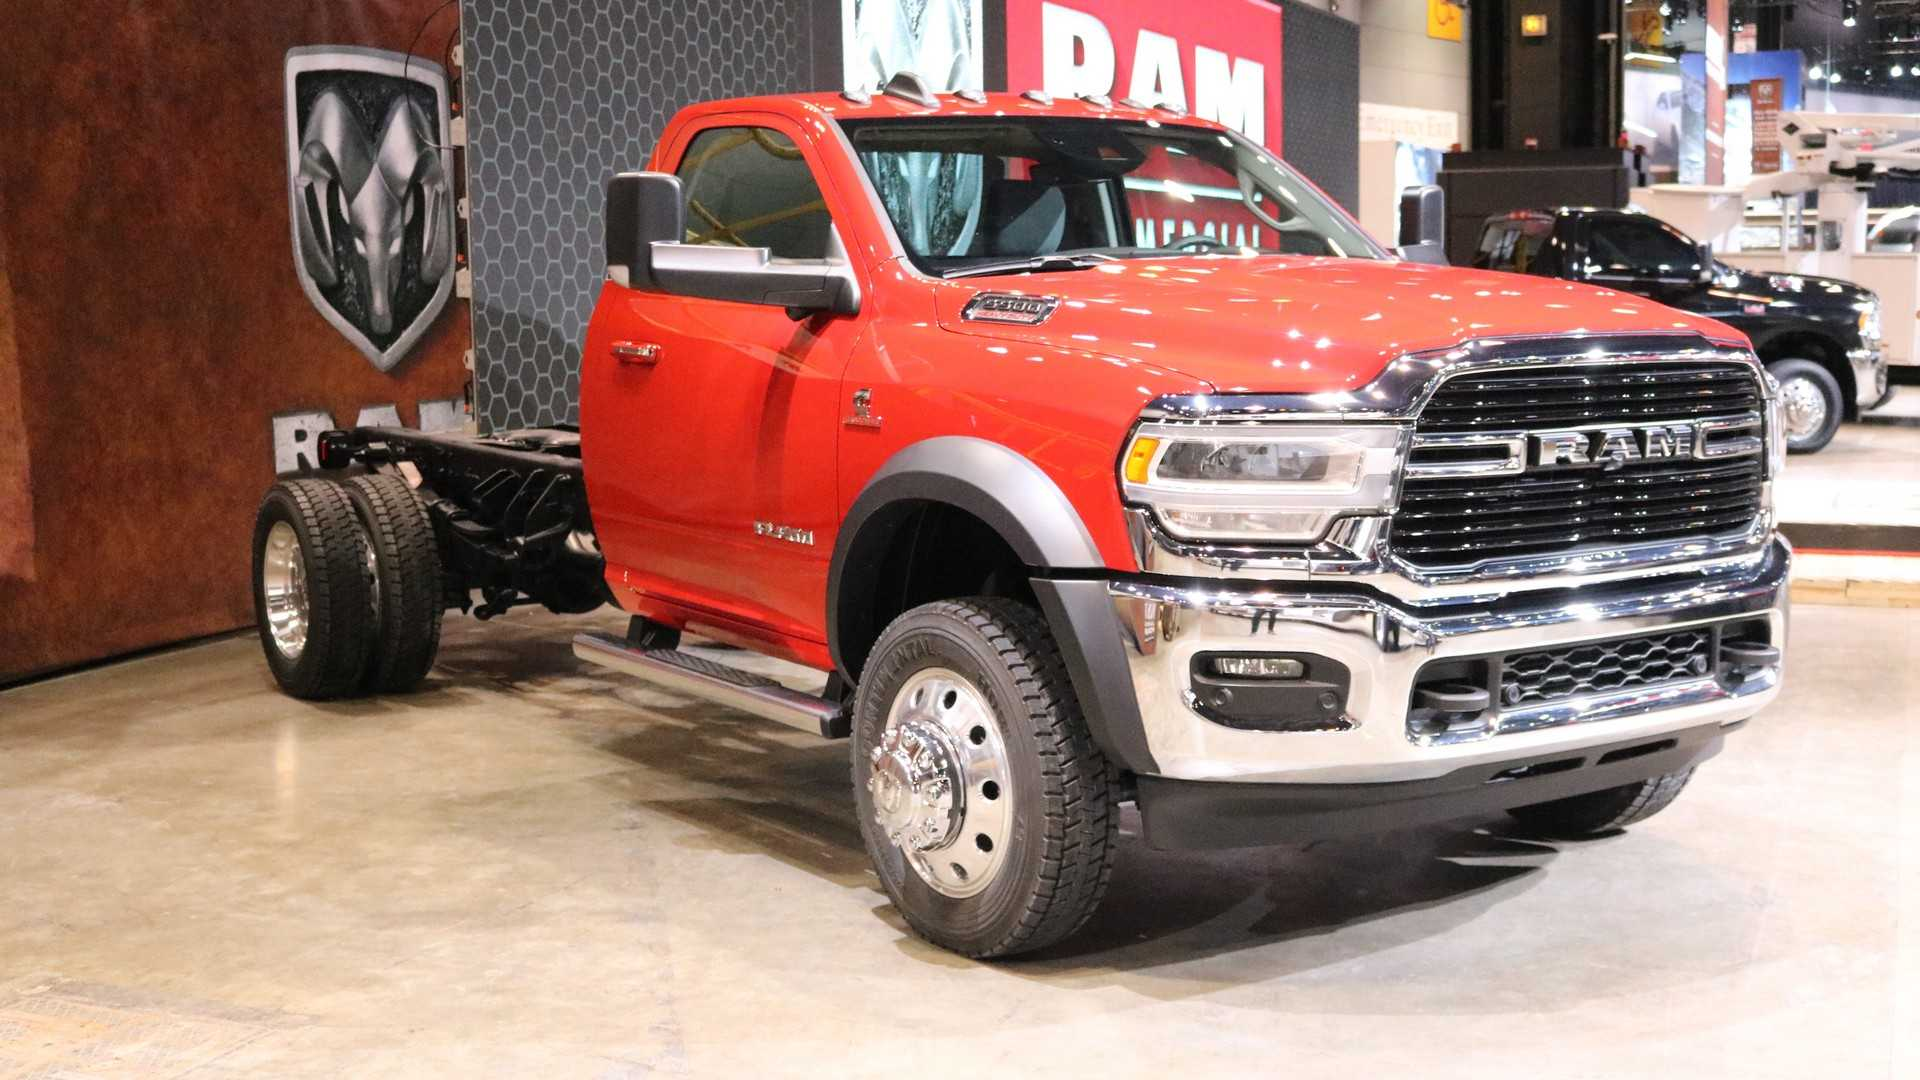 2019 Ram Chassis Cab Combines Fresh Face With Luxury And Power